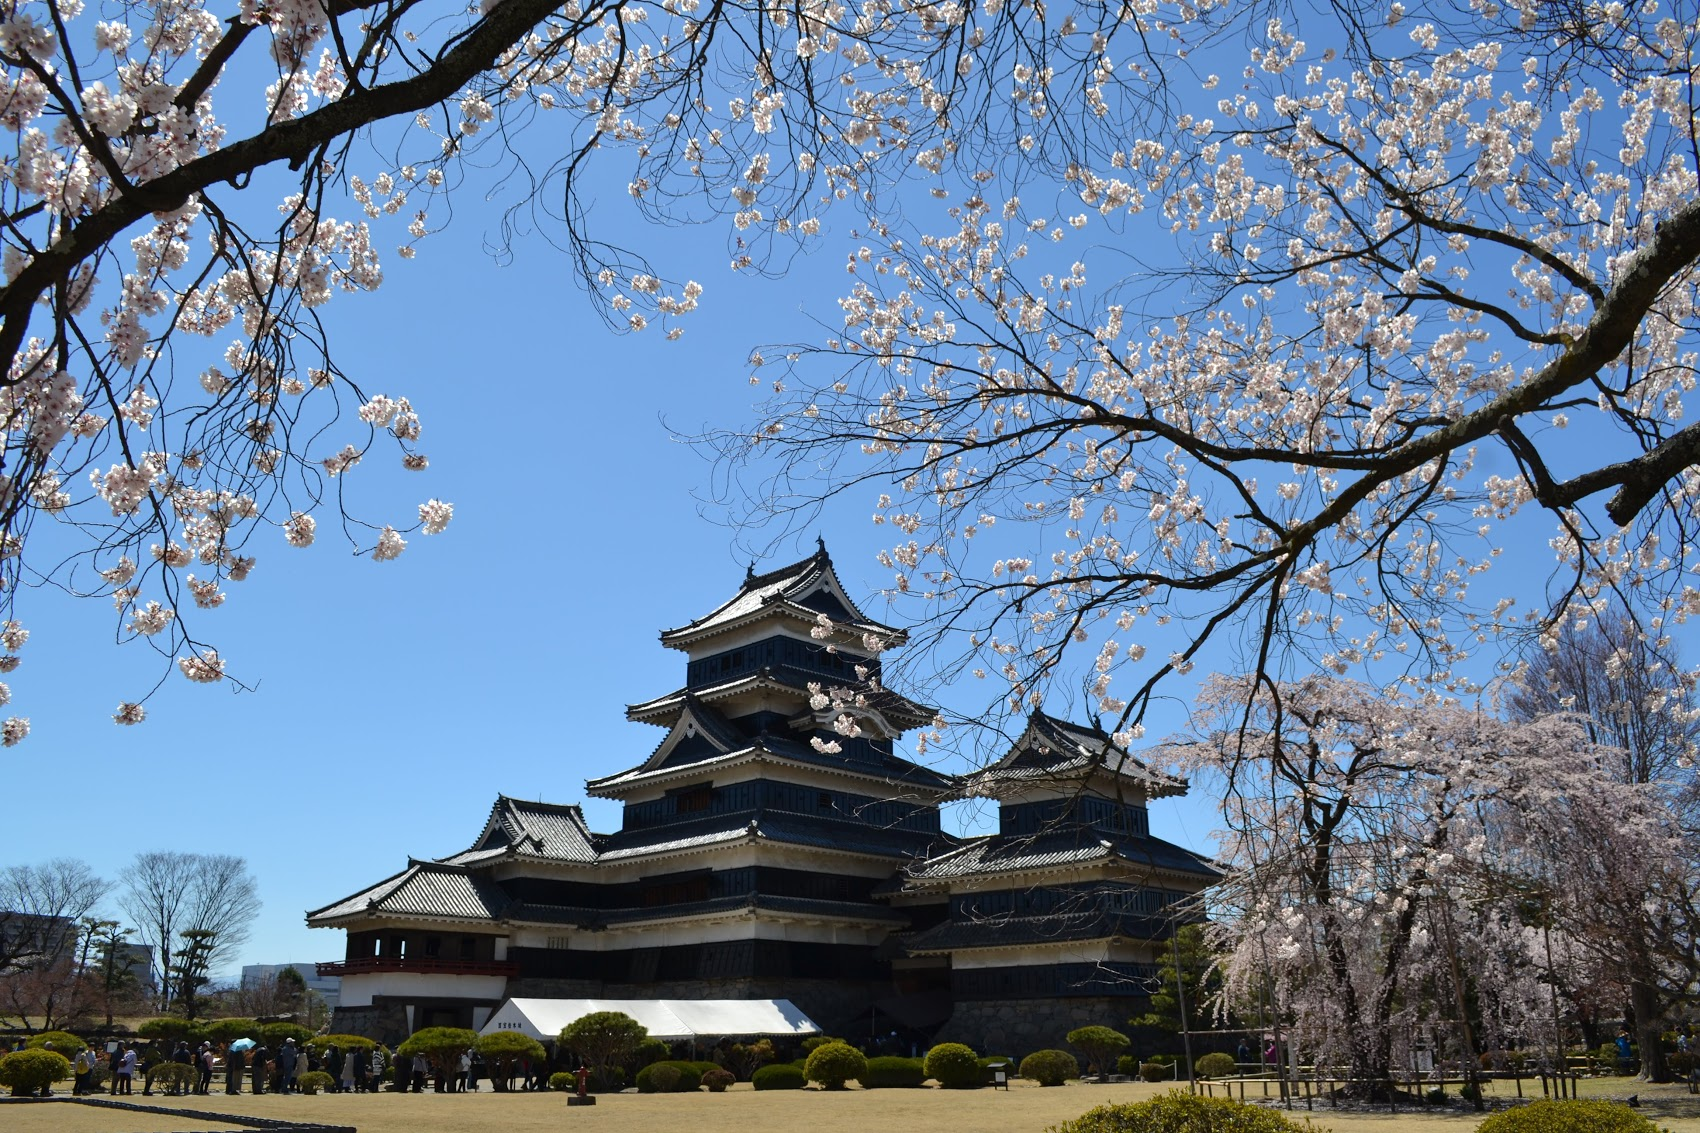 There were a whole lot of cherry blossoms surrounding the grasses of the main keep. It was nice to stand under the shade of the trees to see Matsumoto Castle on a very sunny day.